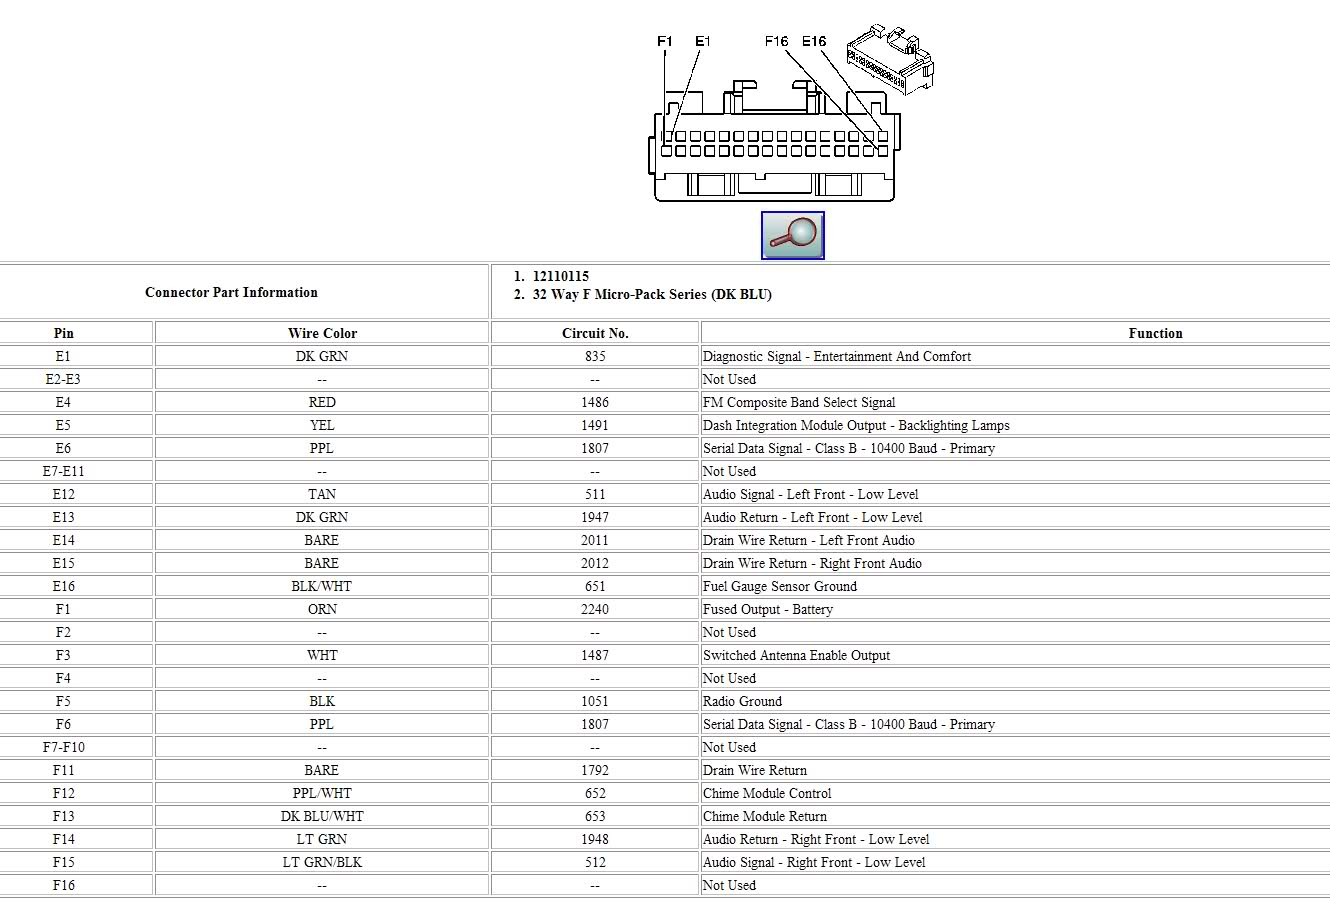 Chevy Radio Wiring Diagram from wholefoodsonabudget.com